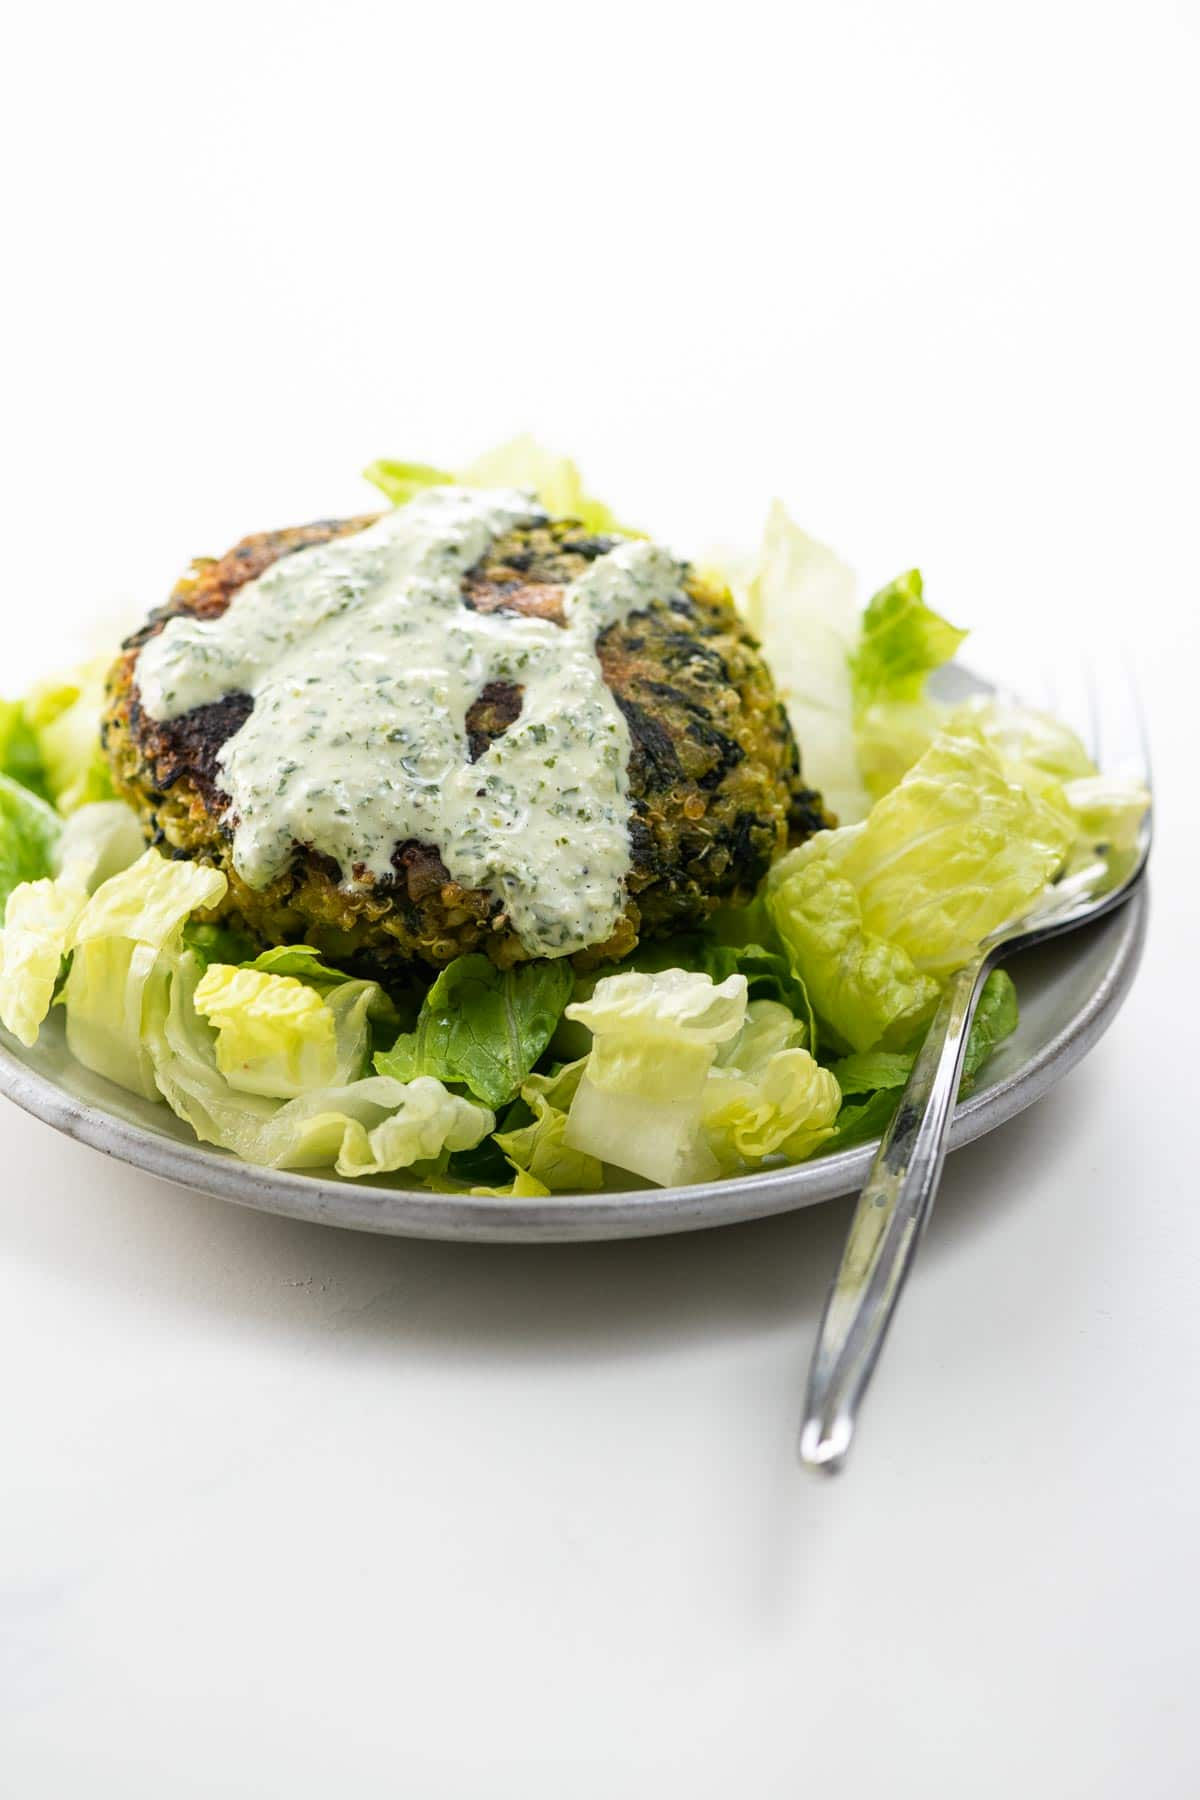 a fava bean burger on a small plate with lettuce and green goddess dressing